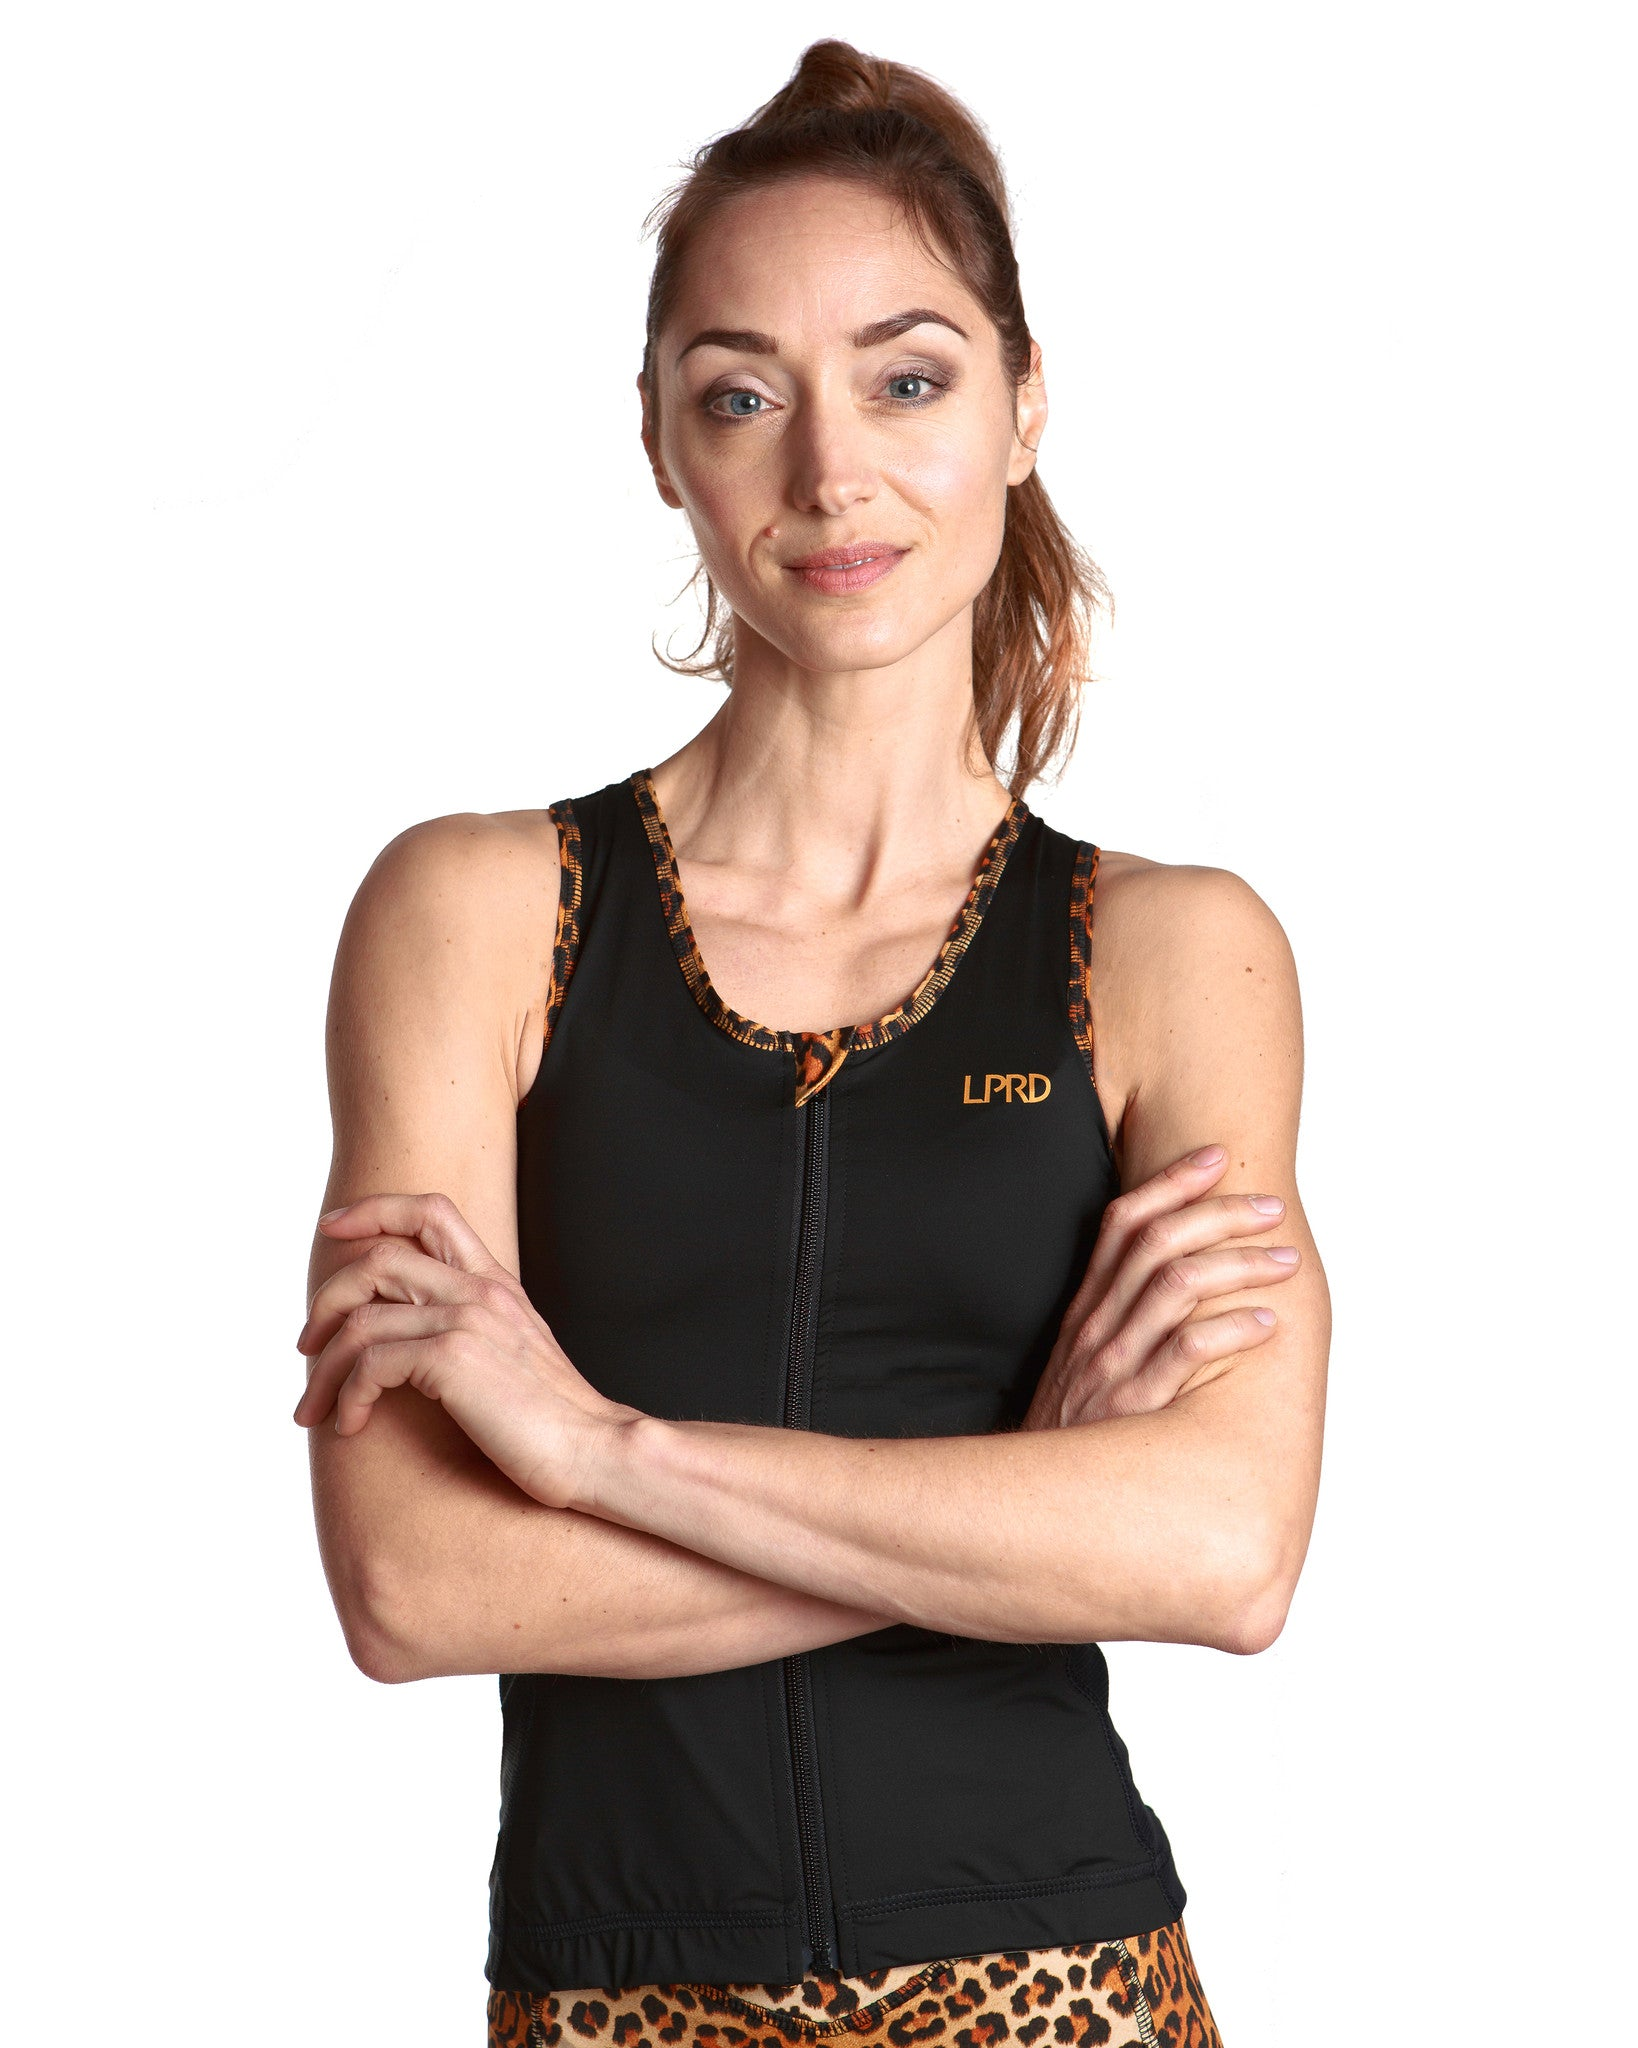 LPRD Black Tank Top | Front View Detail